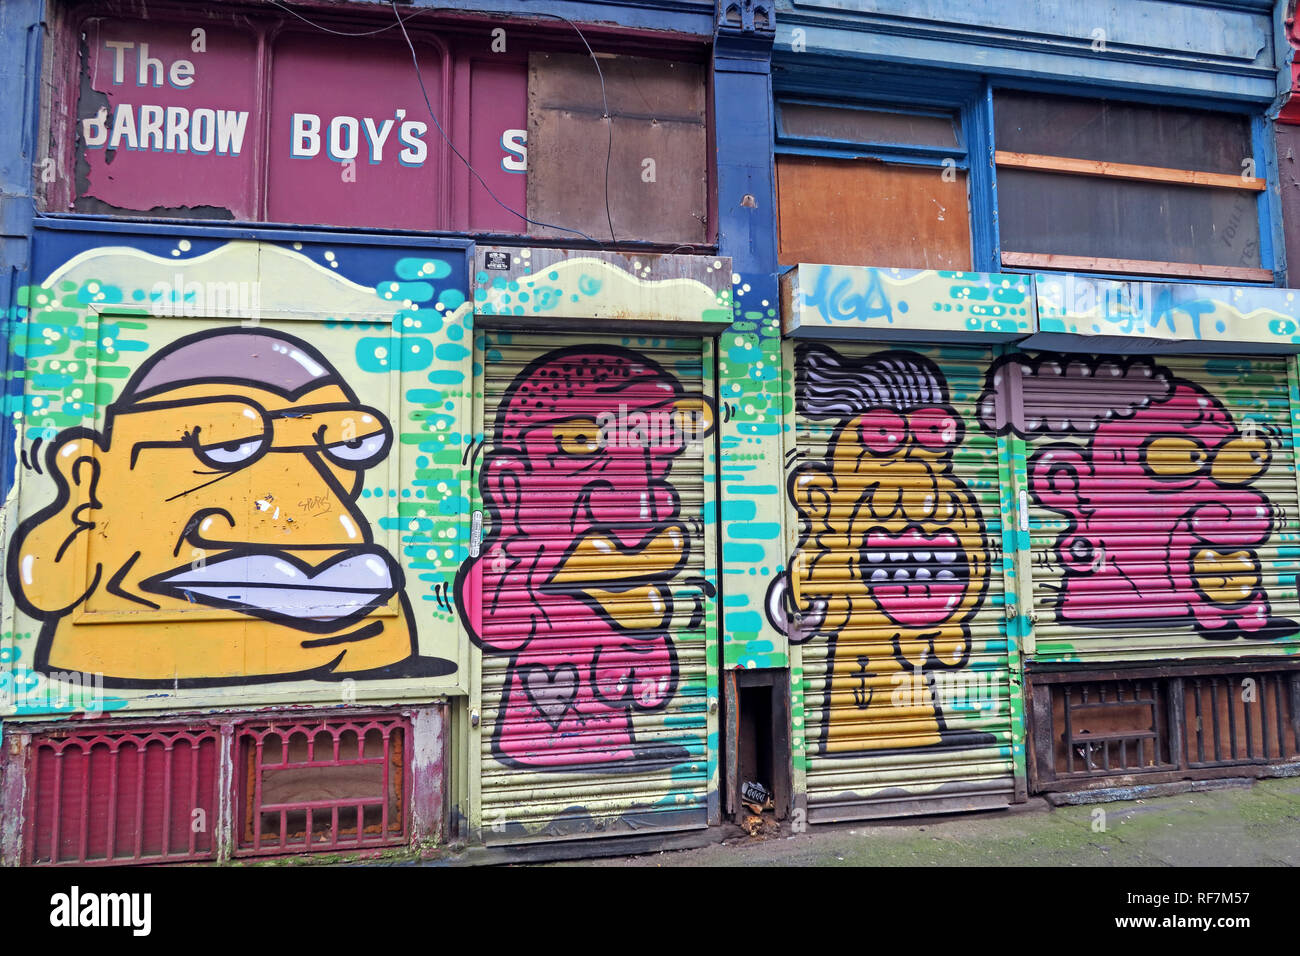 Derelict shop, The Barrow Boys Shop, Paton Street, Piccadilly, Northern Quarter, Manchester, North West England, UK, M1 2BA - Stock Image